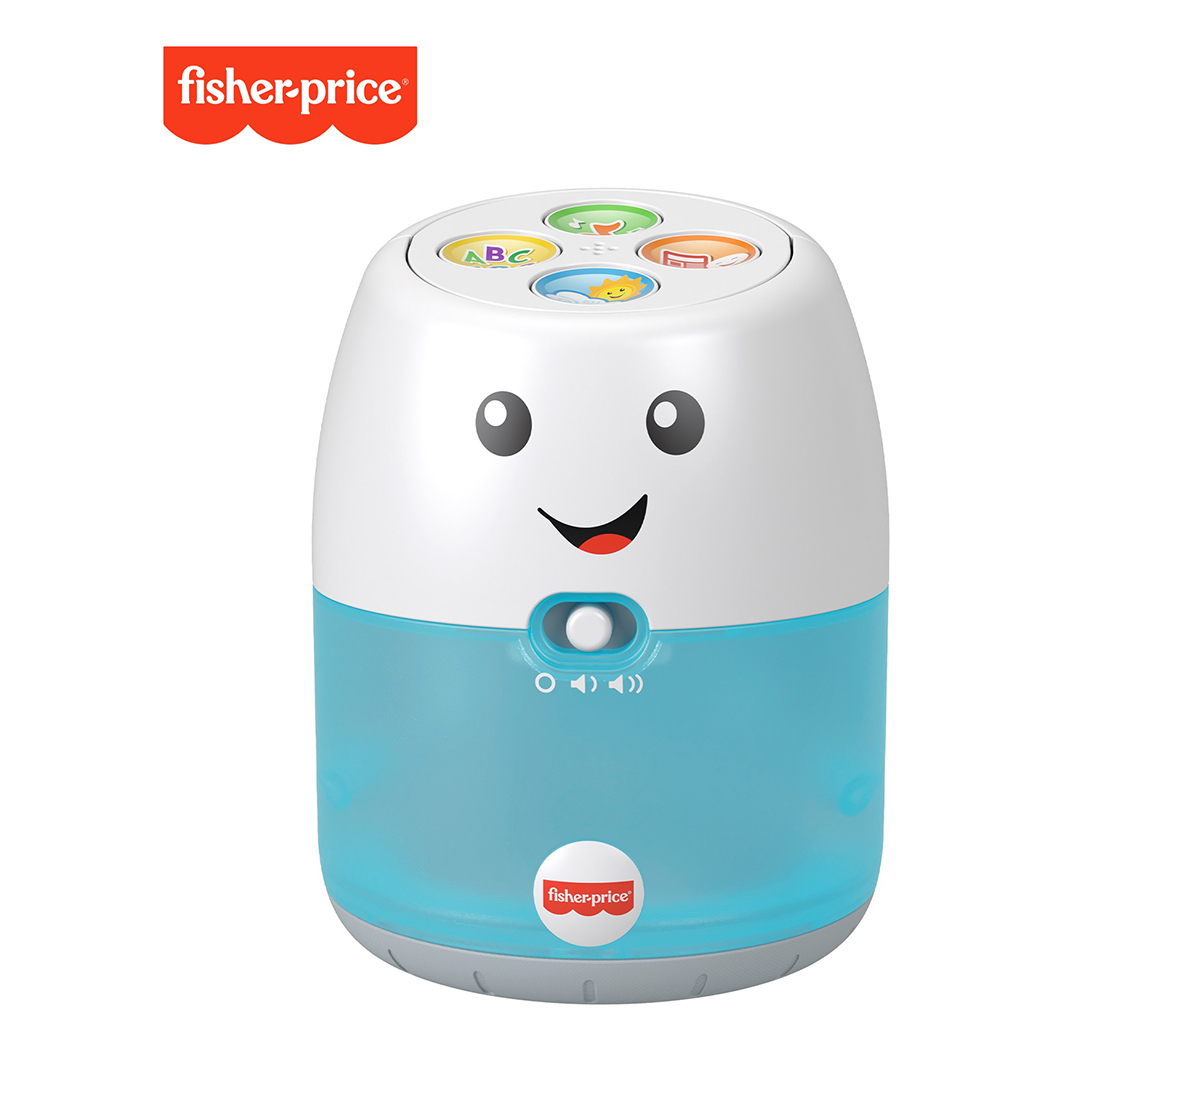 Fisher-Price | Fisher price laugh and learn SMART HUB Learning Toys for Kids age 9M+